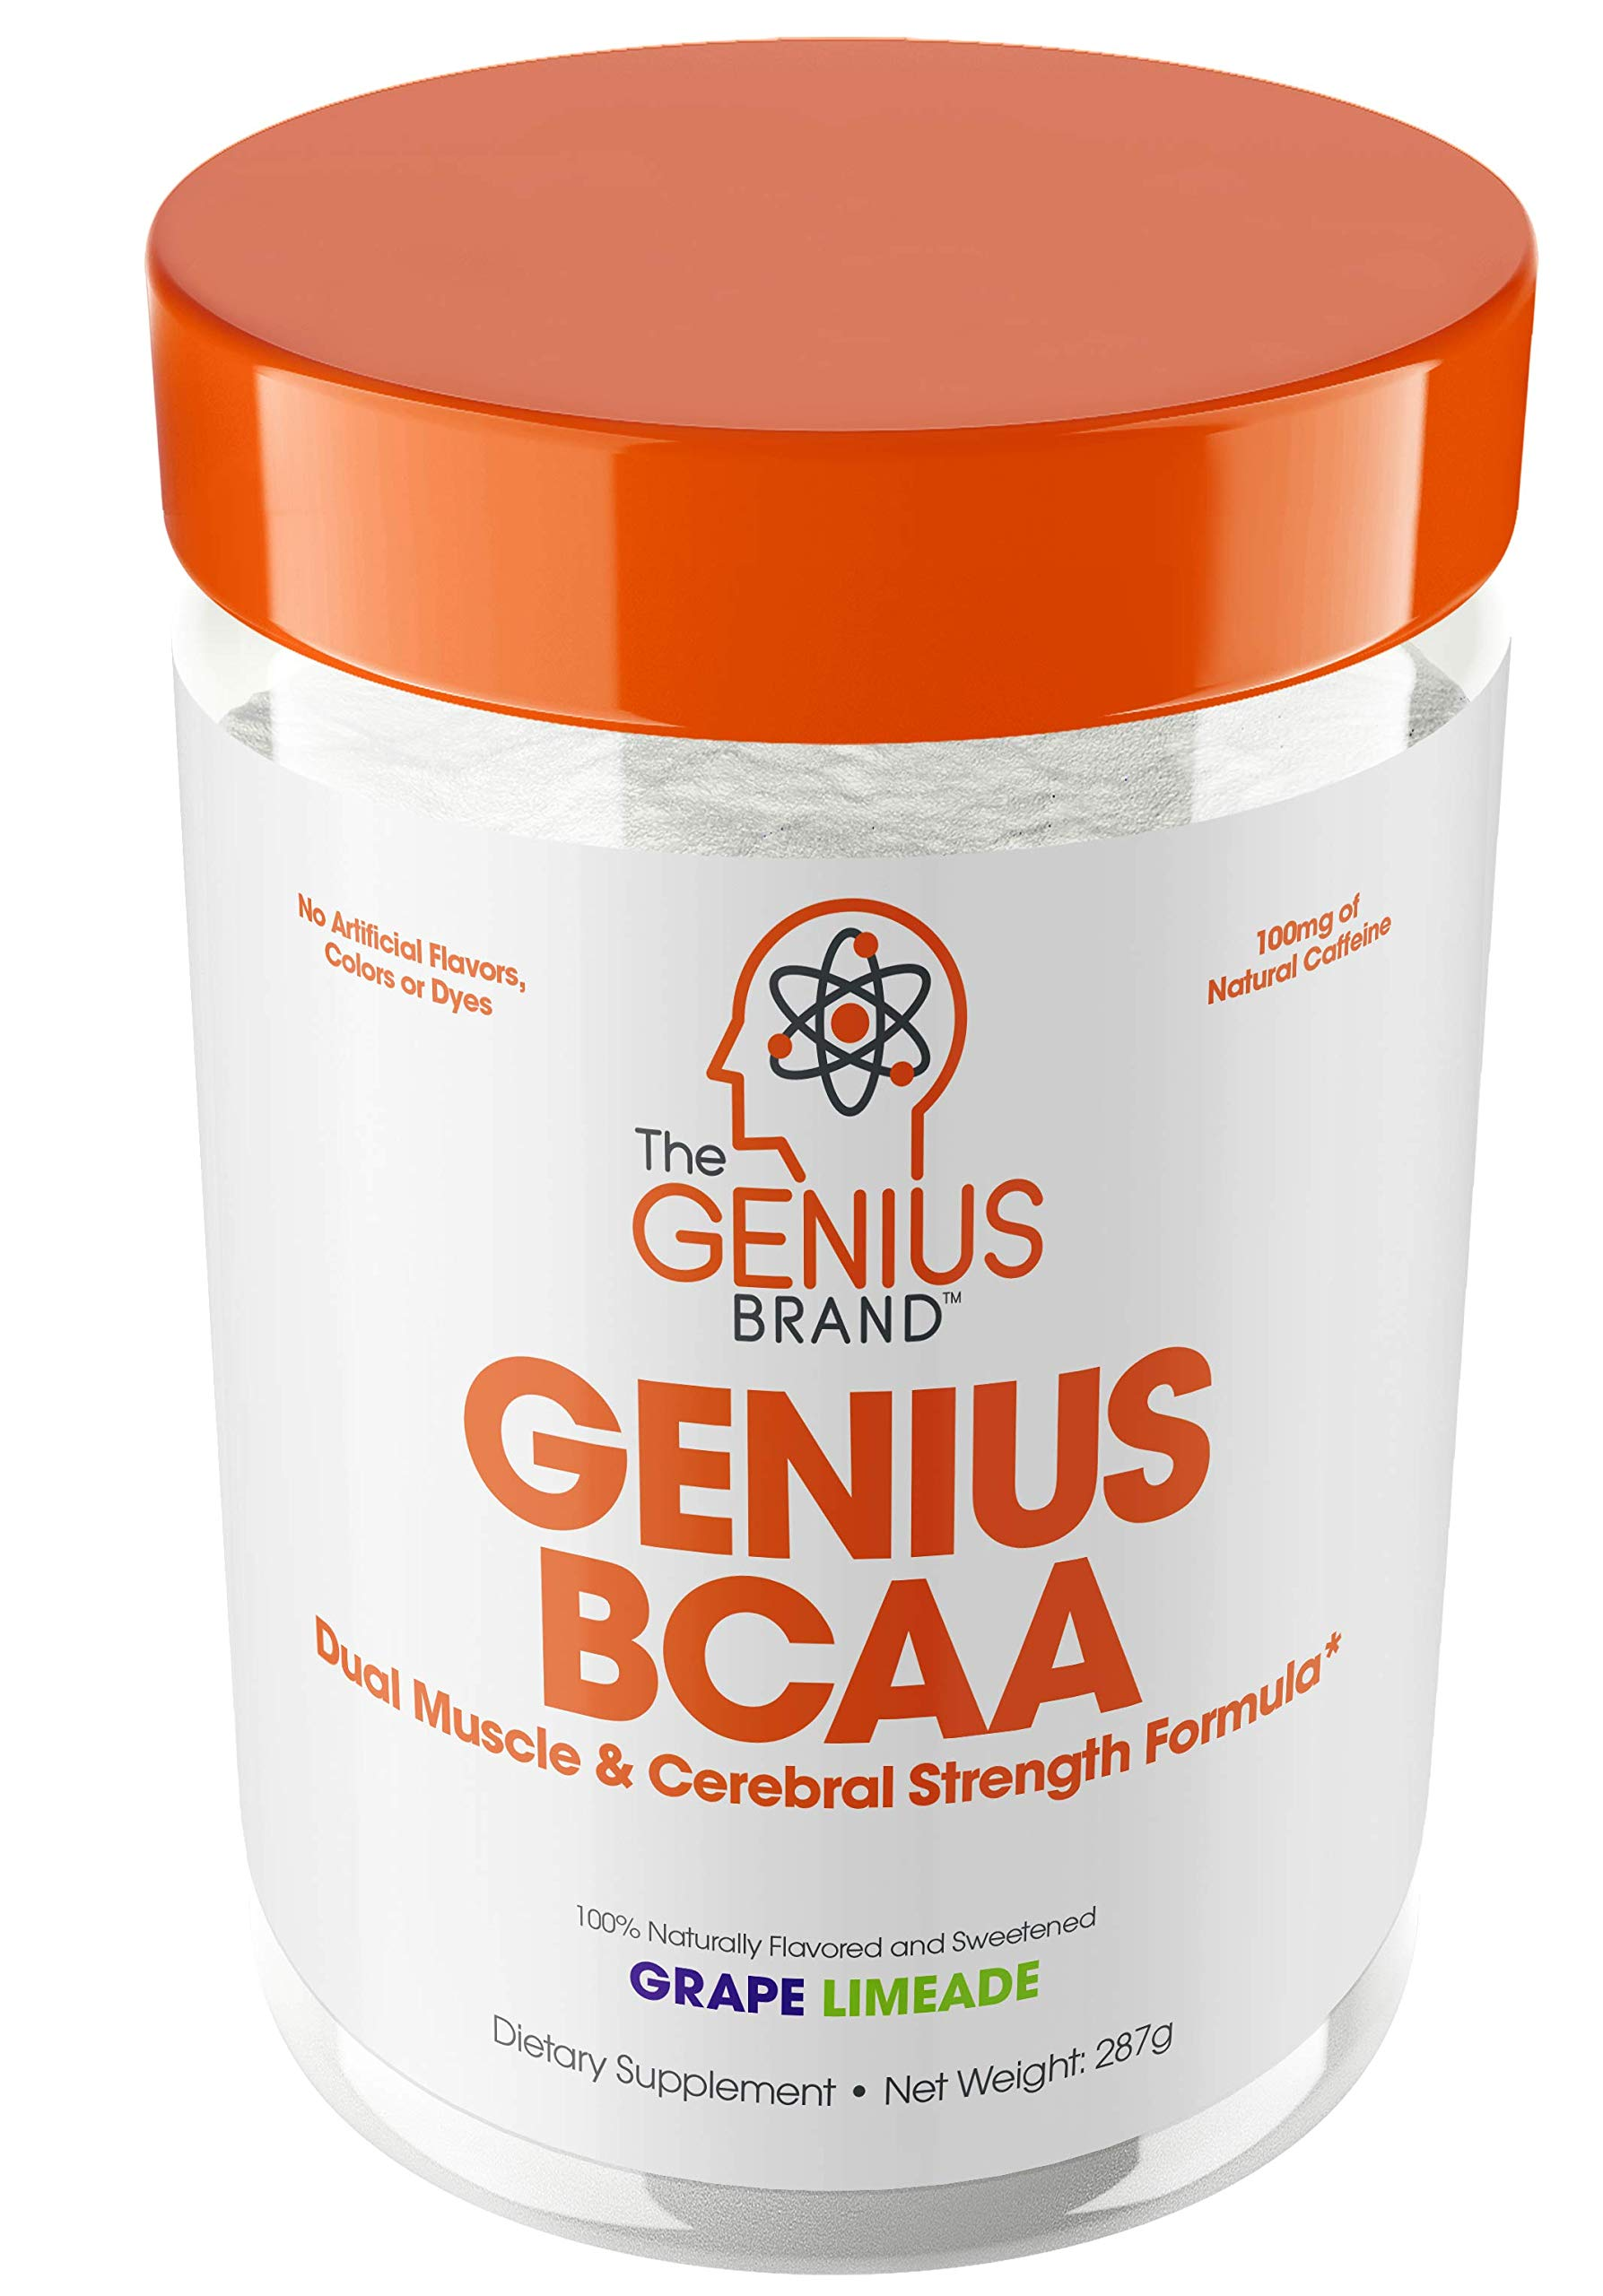 Genius BCAA Powder - Nootropic Amino Acids & Muscle Recovery Drink | Natural Vegan Energy BCAAs for Women & Men (Pre, Intra & Post Workout) | Natural Brain Boost & Focus Supplement, Grape Limeade,287